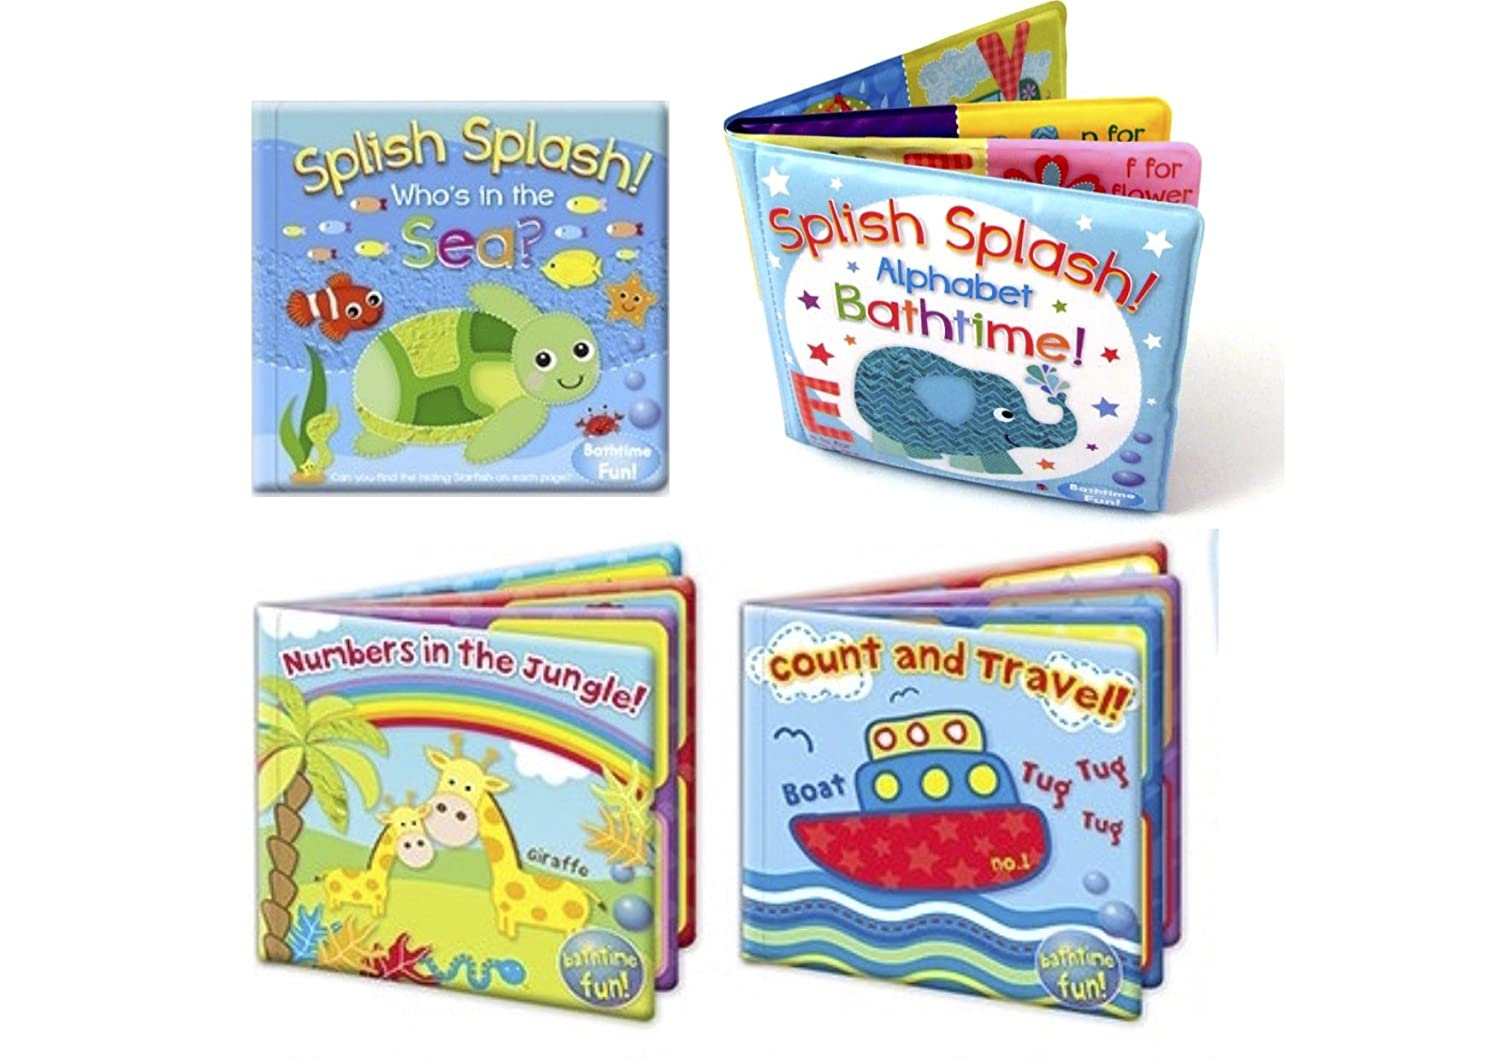 Set of 4 Baby Bath Books | First Words ABC Letters & Numbers | Plastic Coated & Padded | Floating Fun Educational Learning Toys for Toddlers & Kids RSW